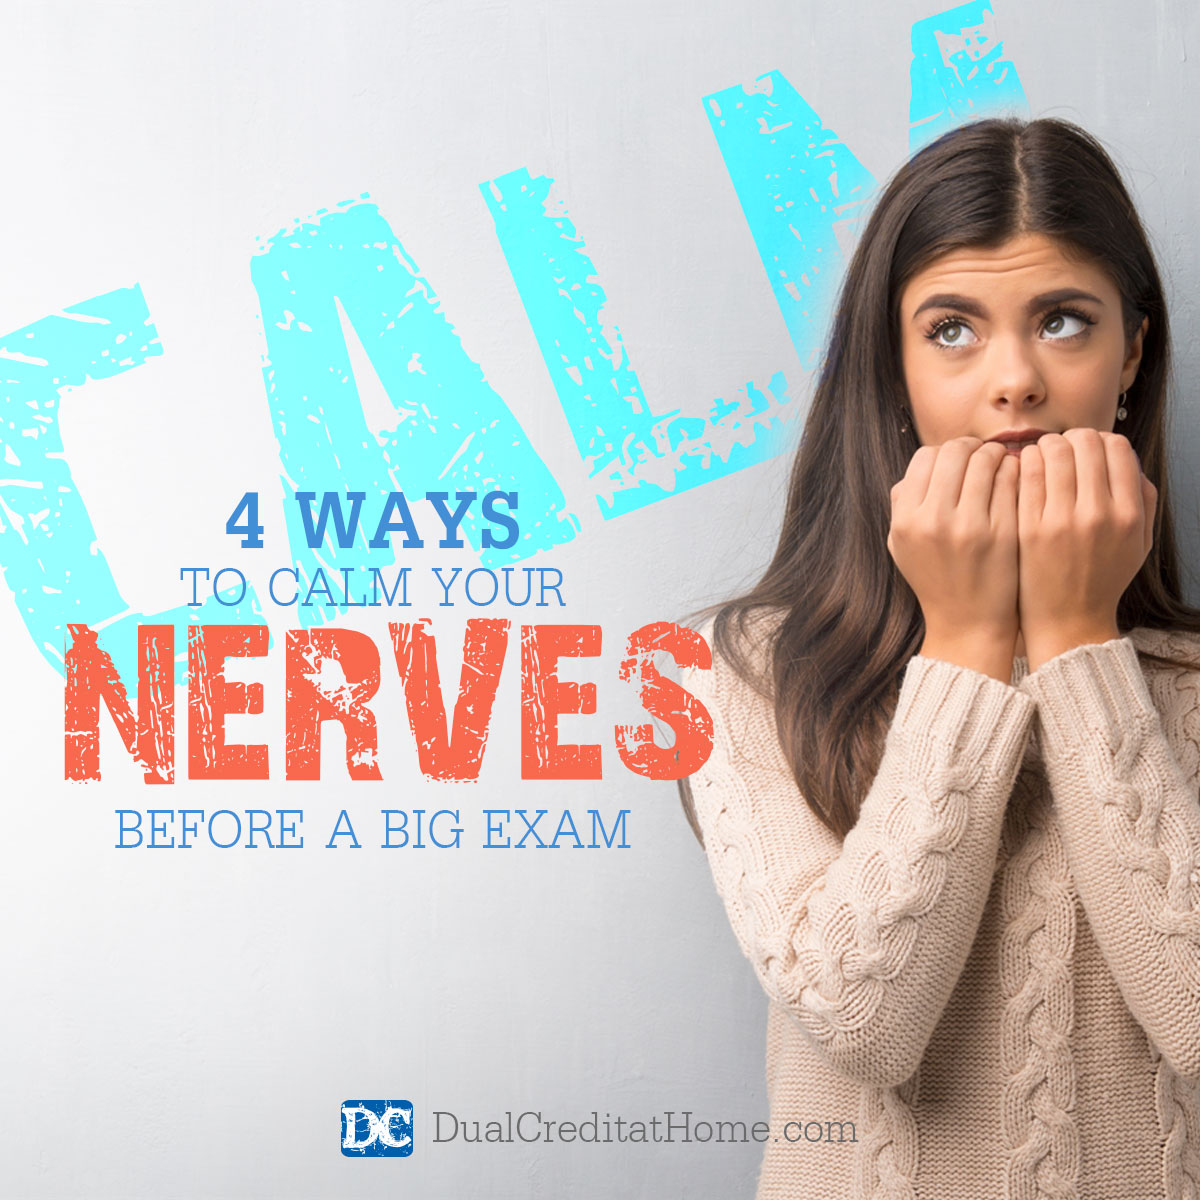 4 Ways to Calm Your Nerves Before a Big Exam